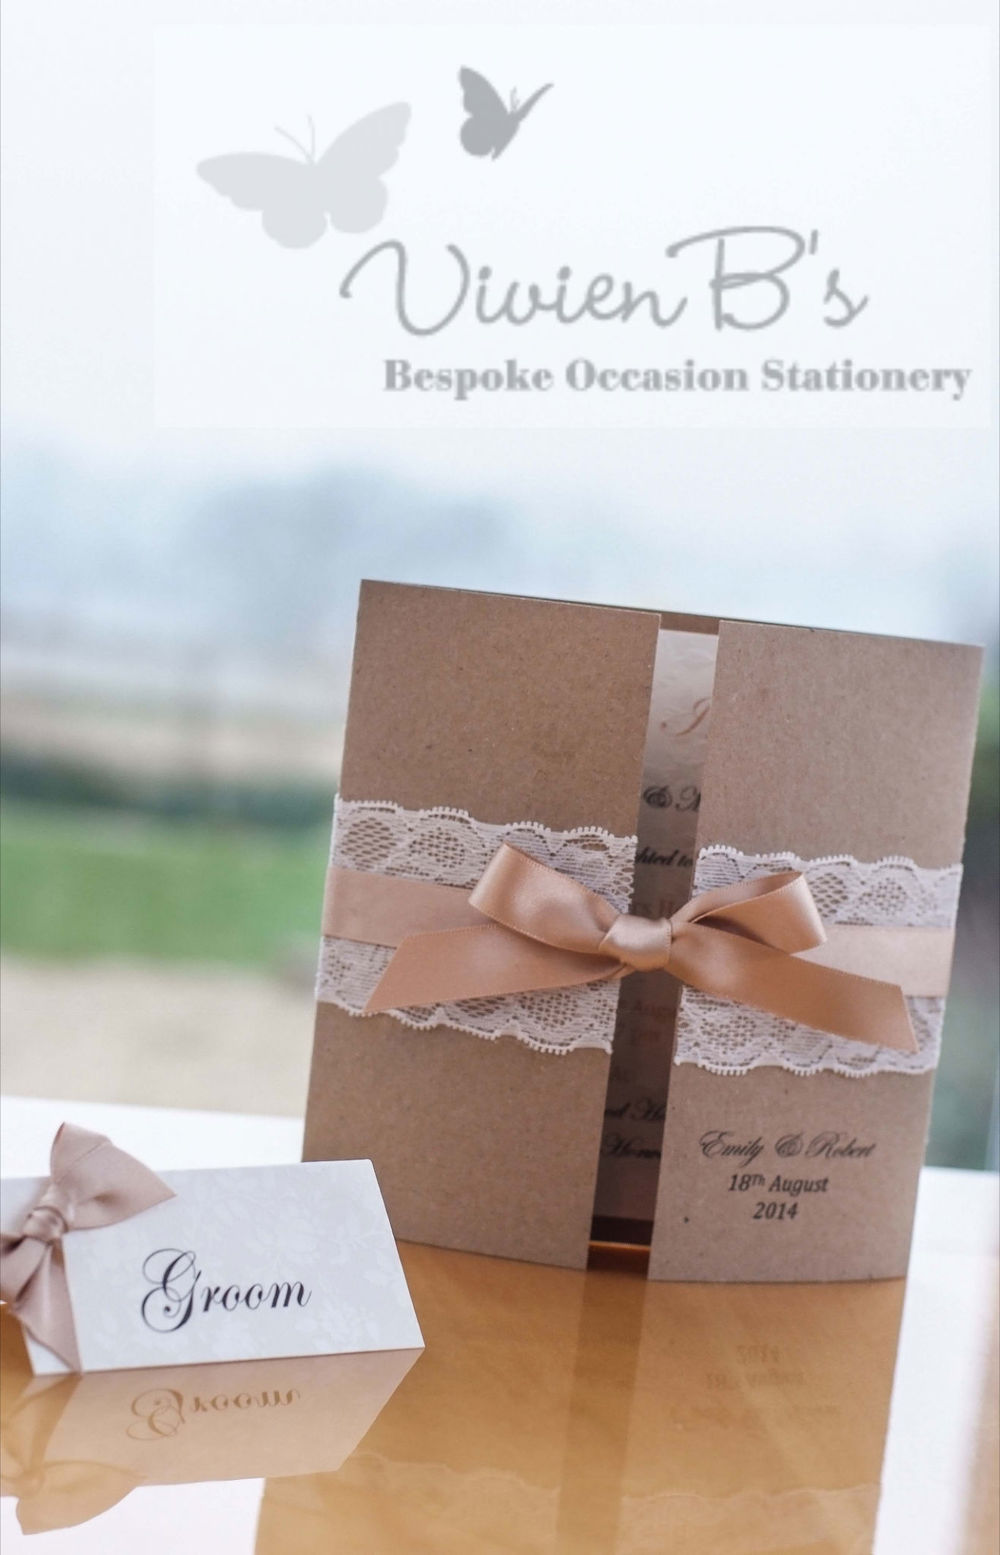 A stunning example of how VivienB's can create wedding stationery that will leave a lasting impression upon your guests